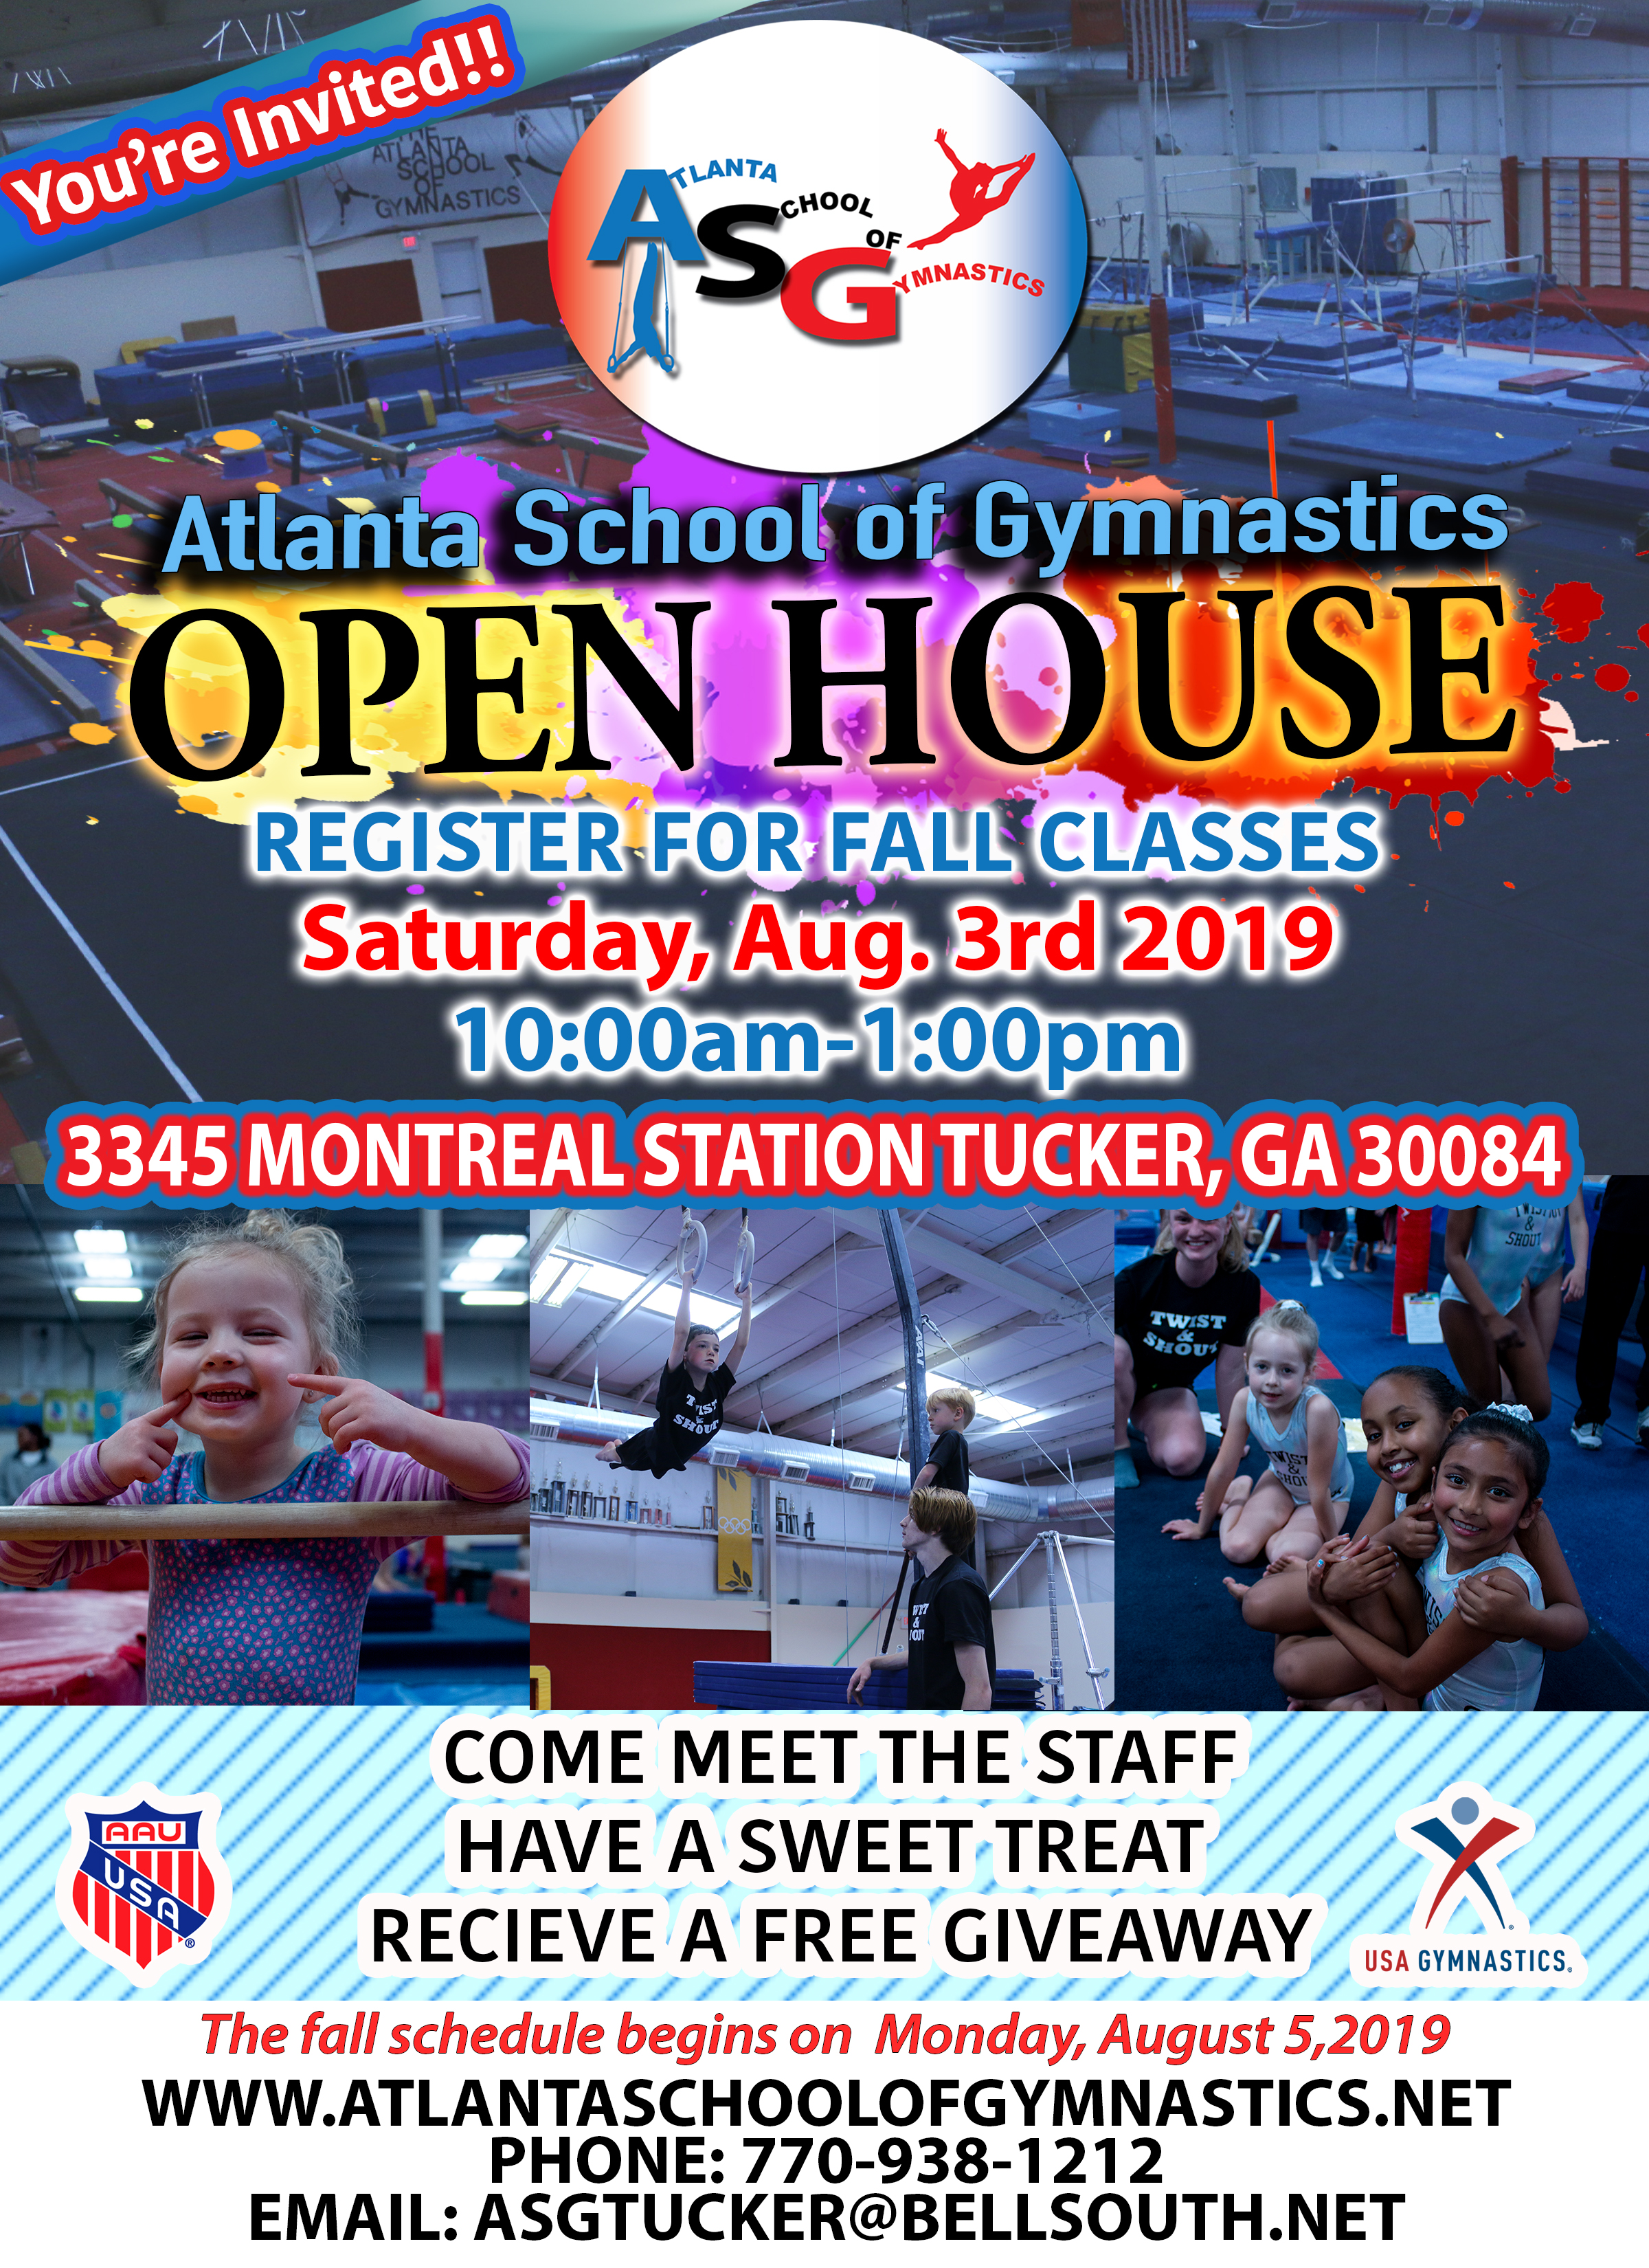 asg-Open House Flyer.jpg